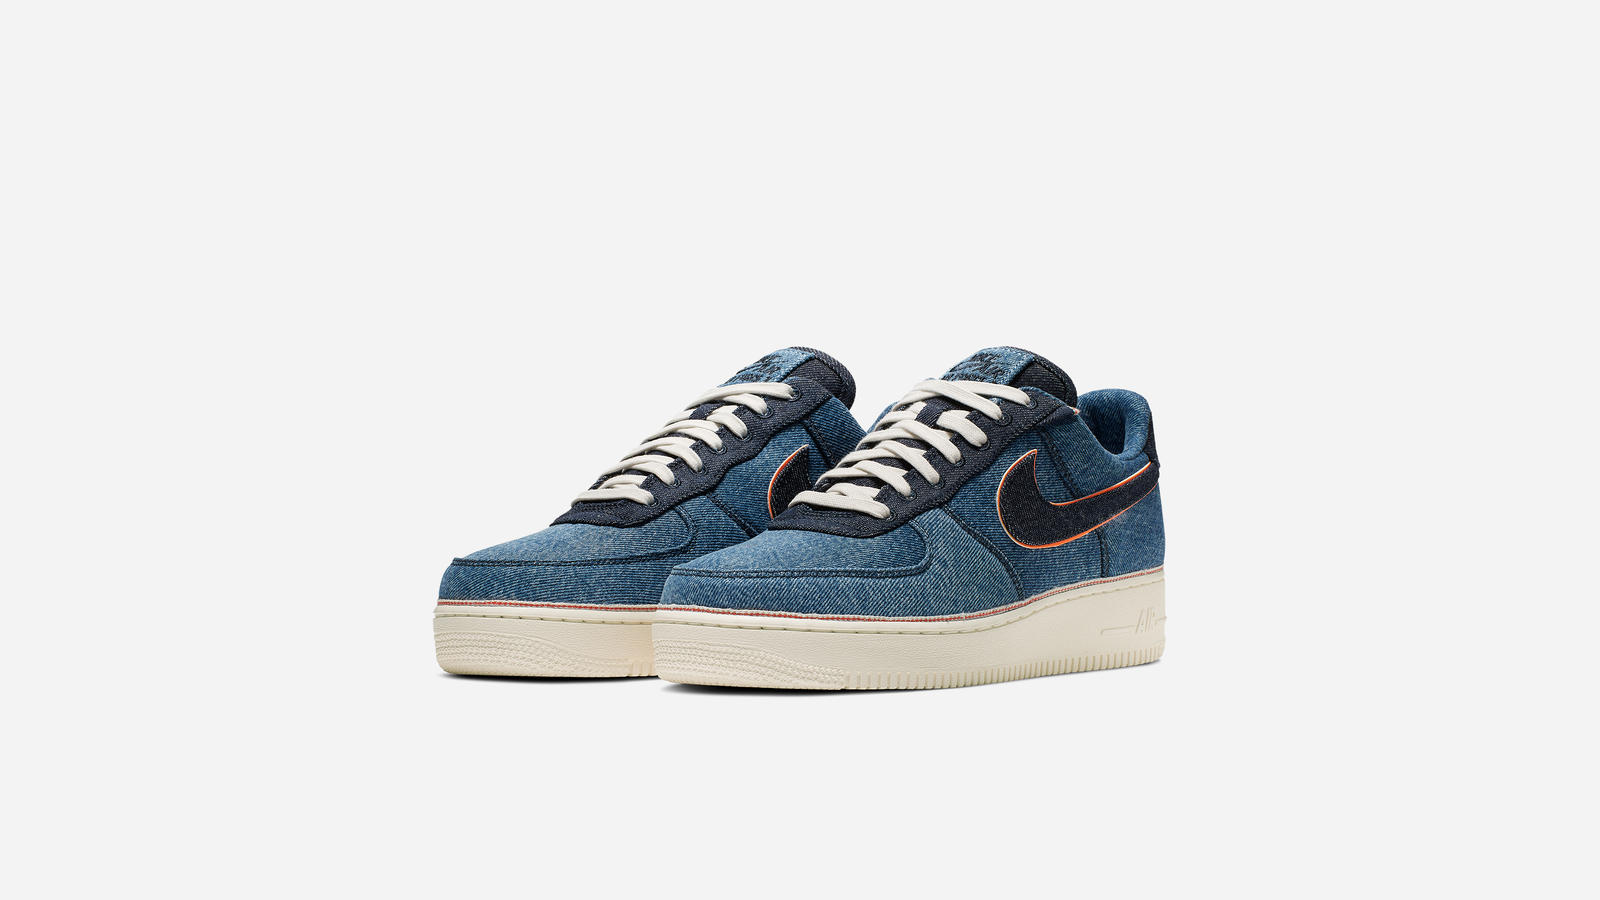 Nike Air Force 1 x 3x1 Denim 4